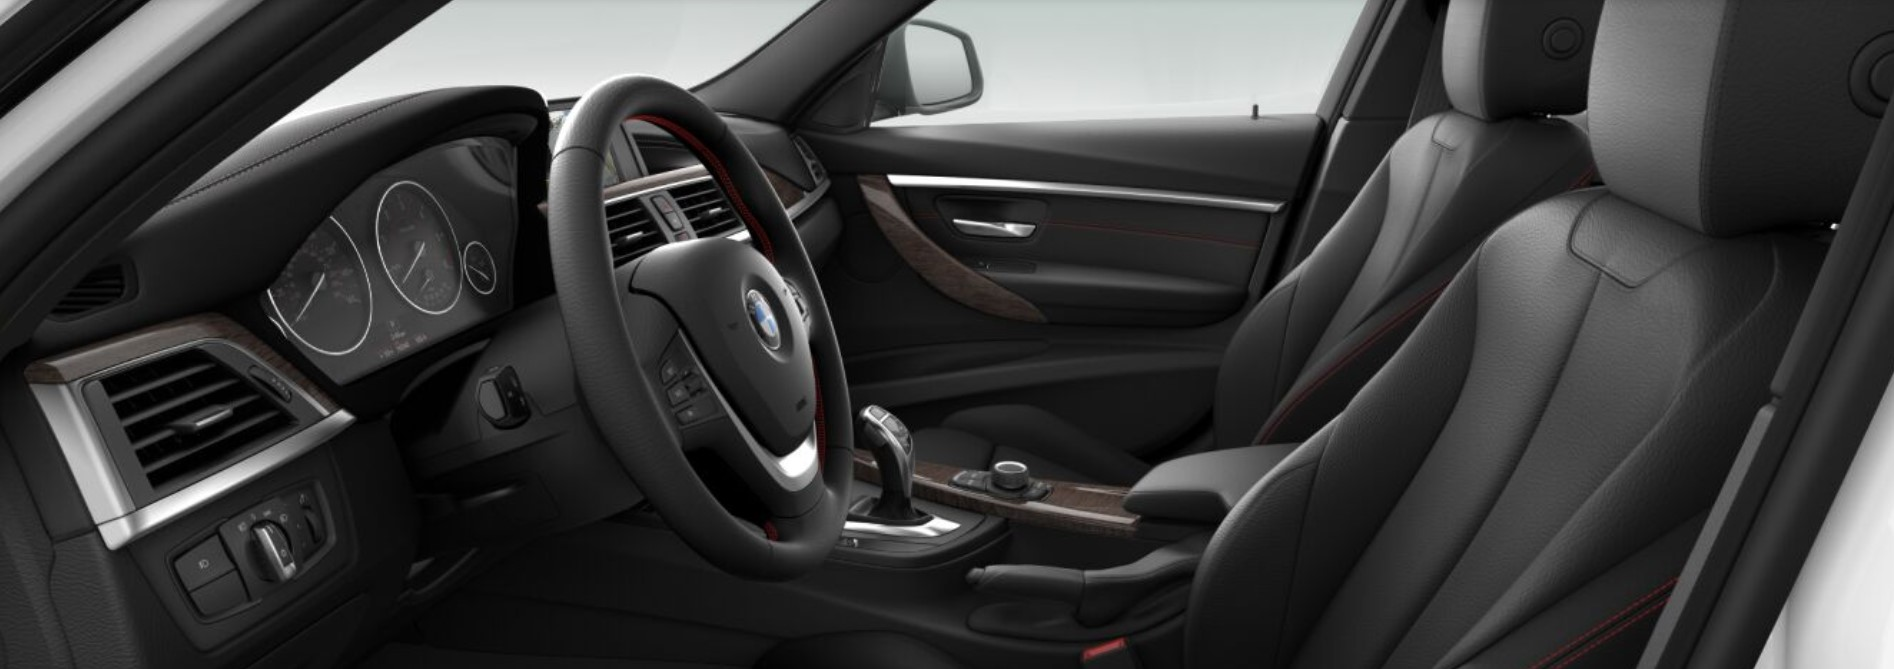 2018 BMW 328d Sedan Black Leather Interior Picture